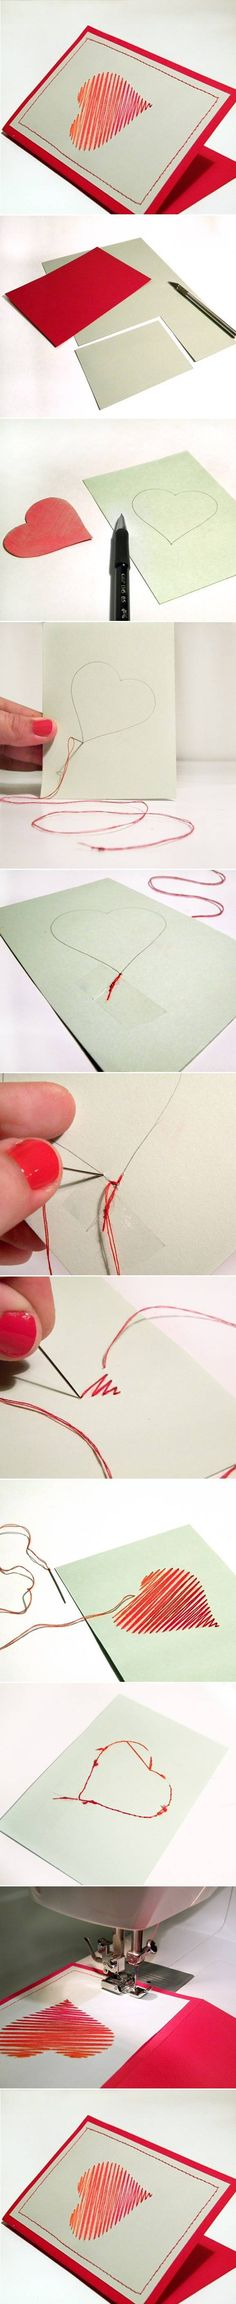 DIY Sew Heart Card DIY Projects | UsefulDIY.com Follow us on Facebook ==> https://www.facebook.com/UsefulDiy